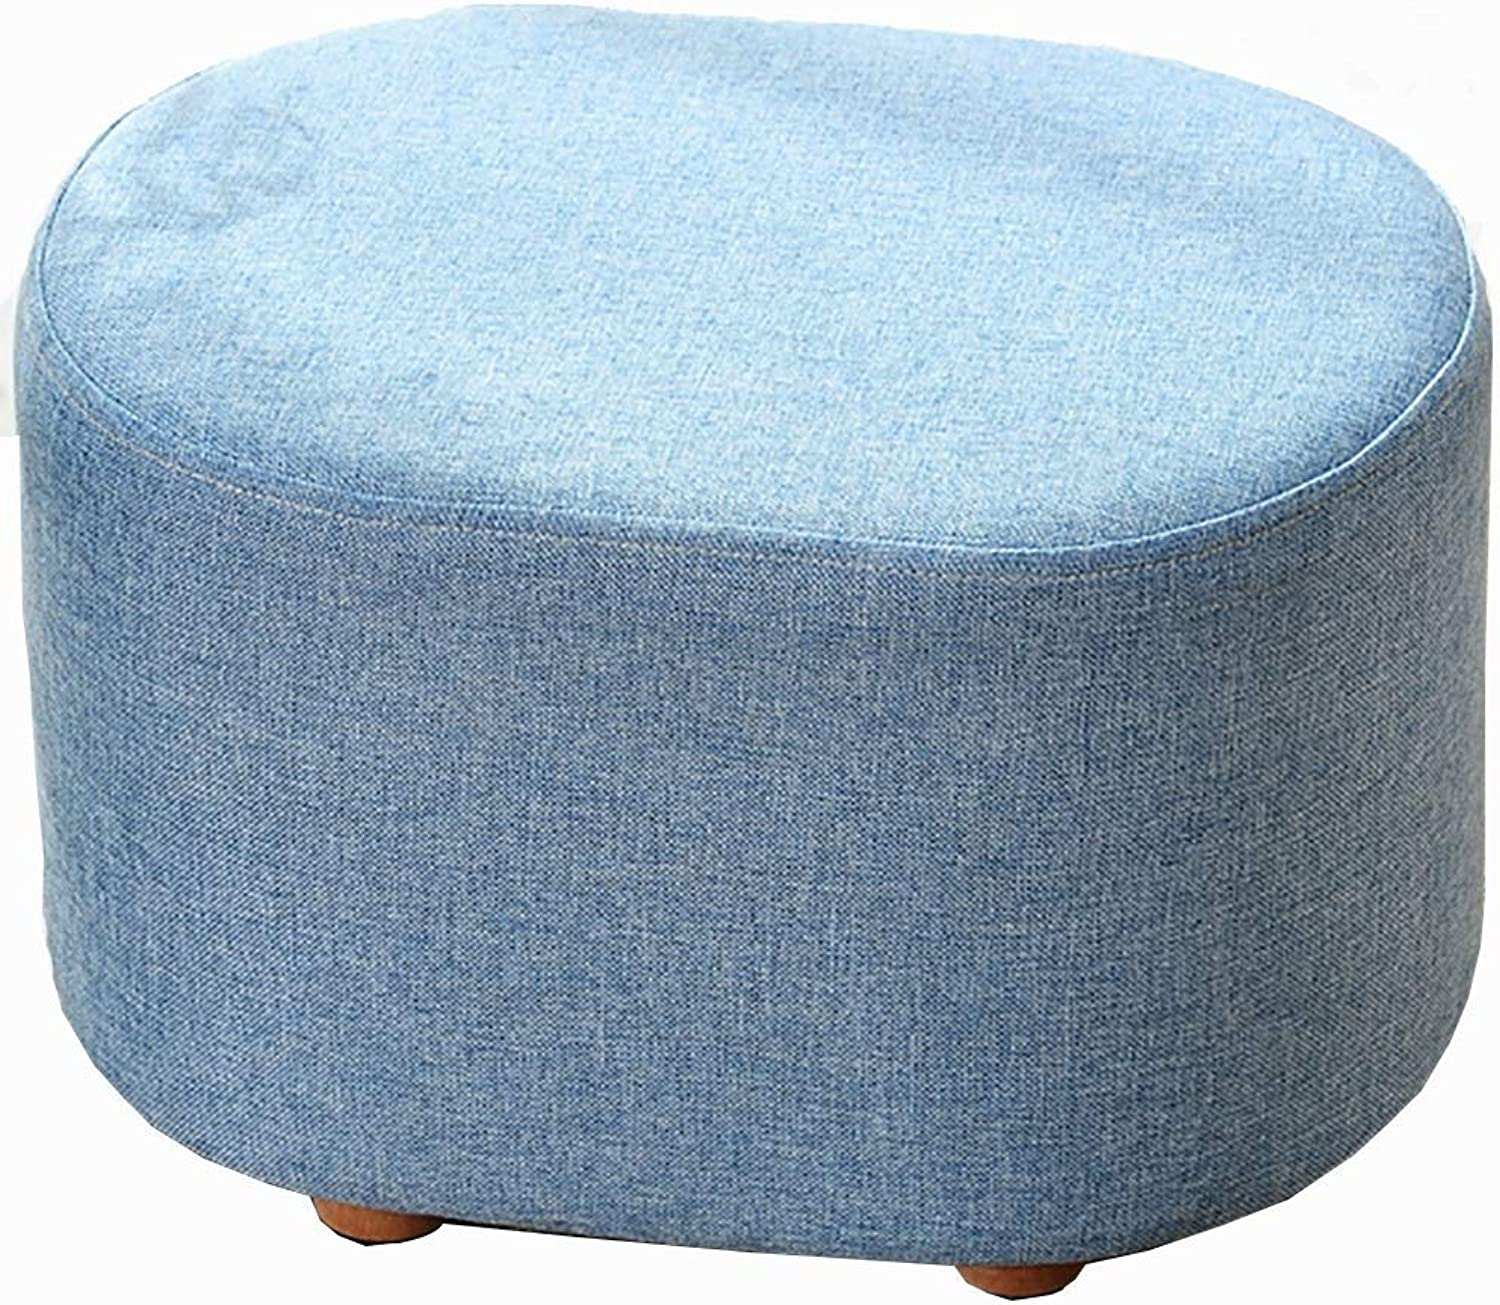 Upholstered Footstool Sofa Stool Solid Wood Stool shoes Bench 3 color Optional GFMING (color   bluee)